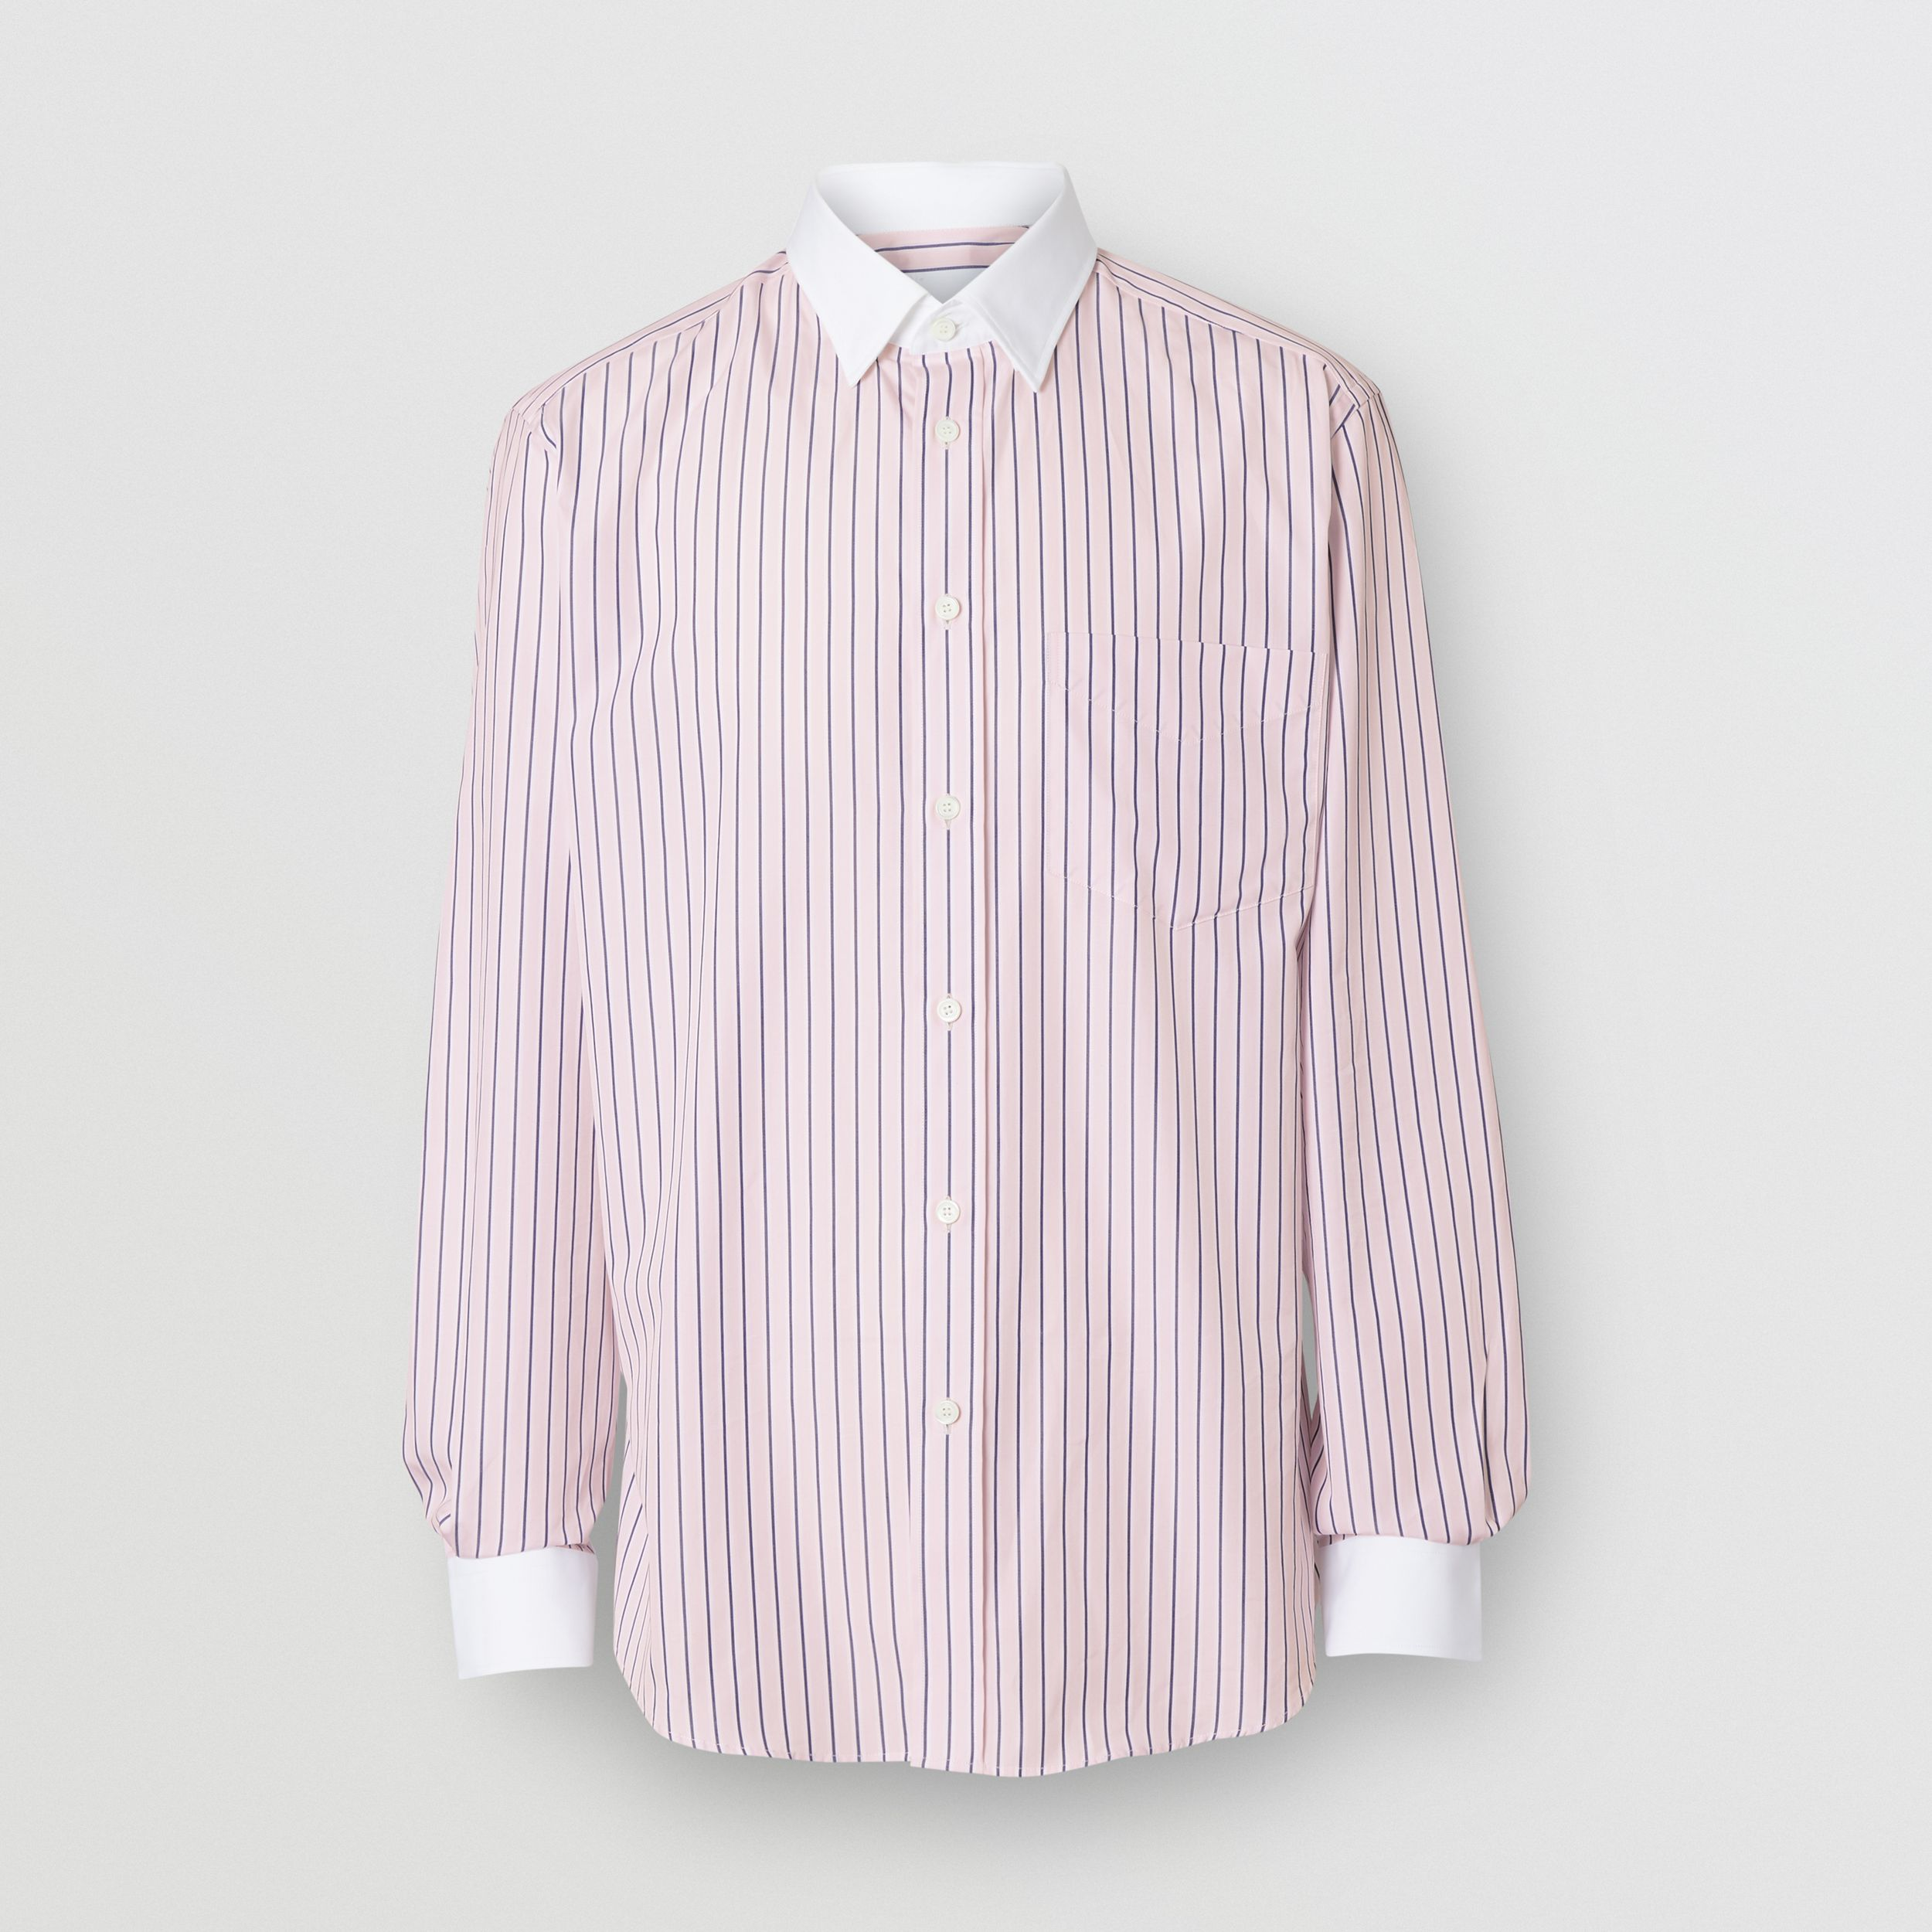 Classic Fit Monogram Motif Striped Cotton Shirt in Alabaster Pink | Burberry - 4